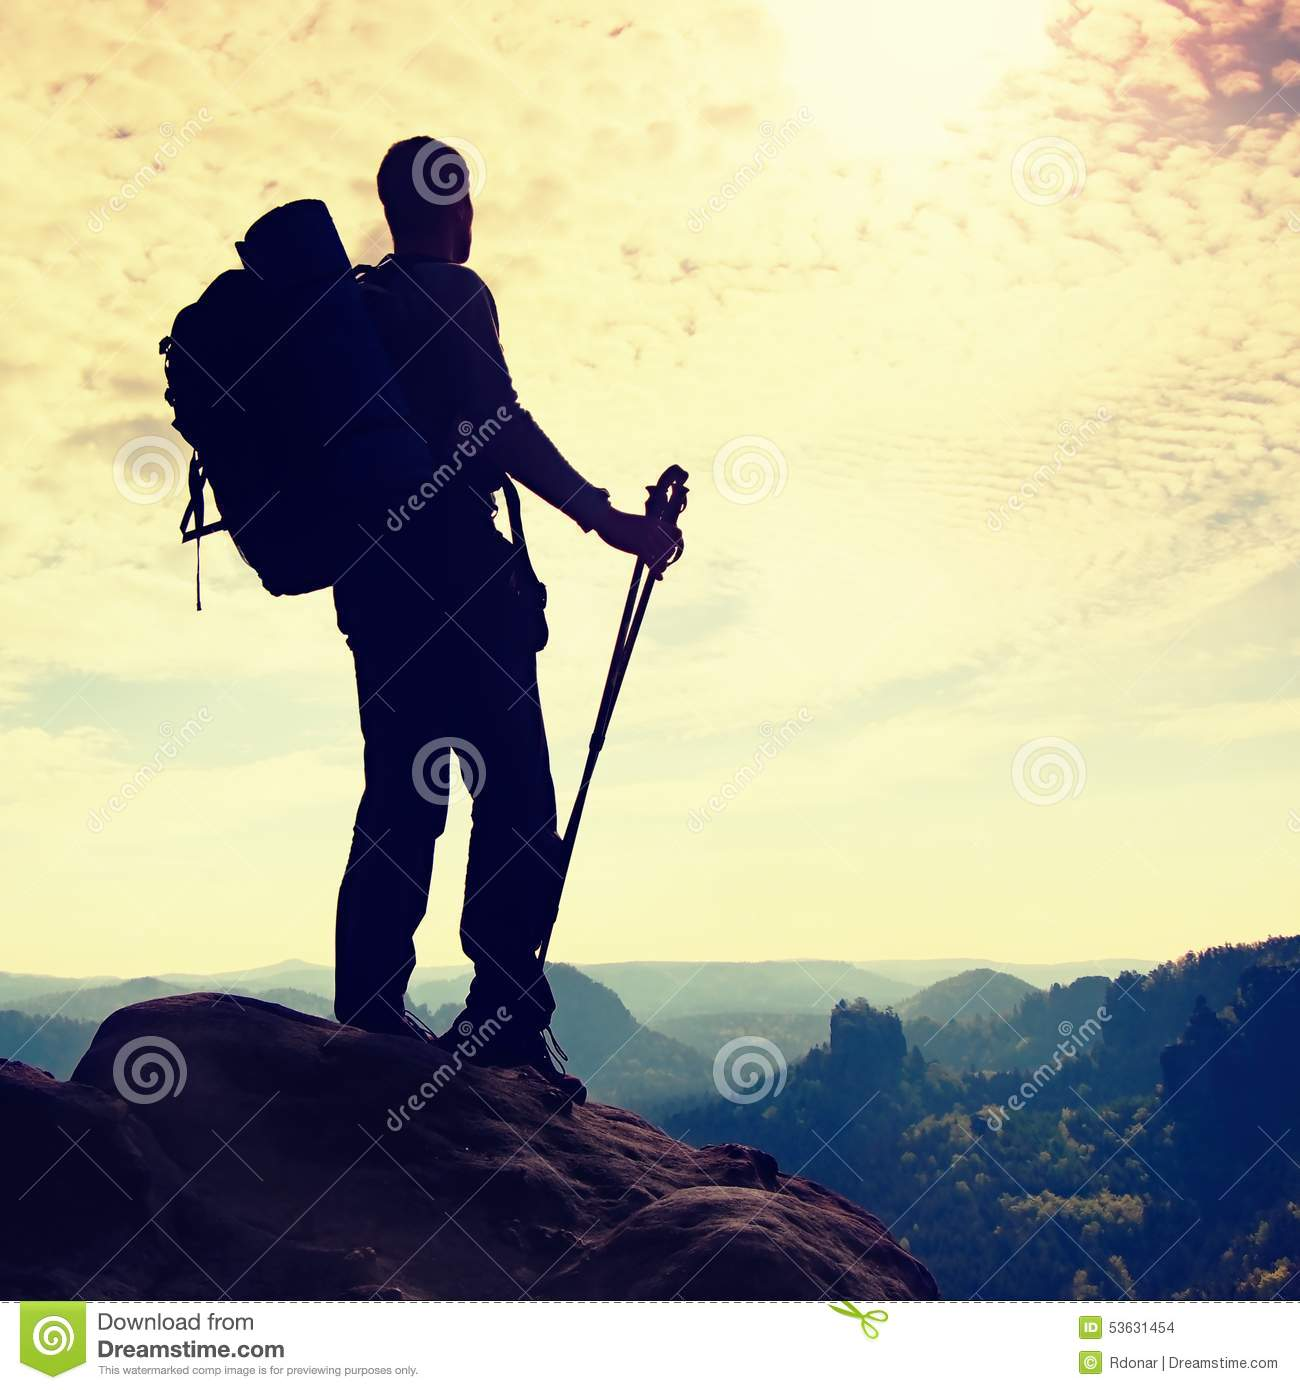 Silhouette Of Tourist With Poles In Hand  Hiker With Big Backpack